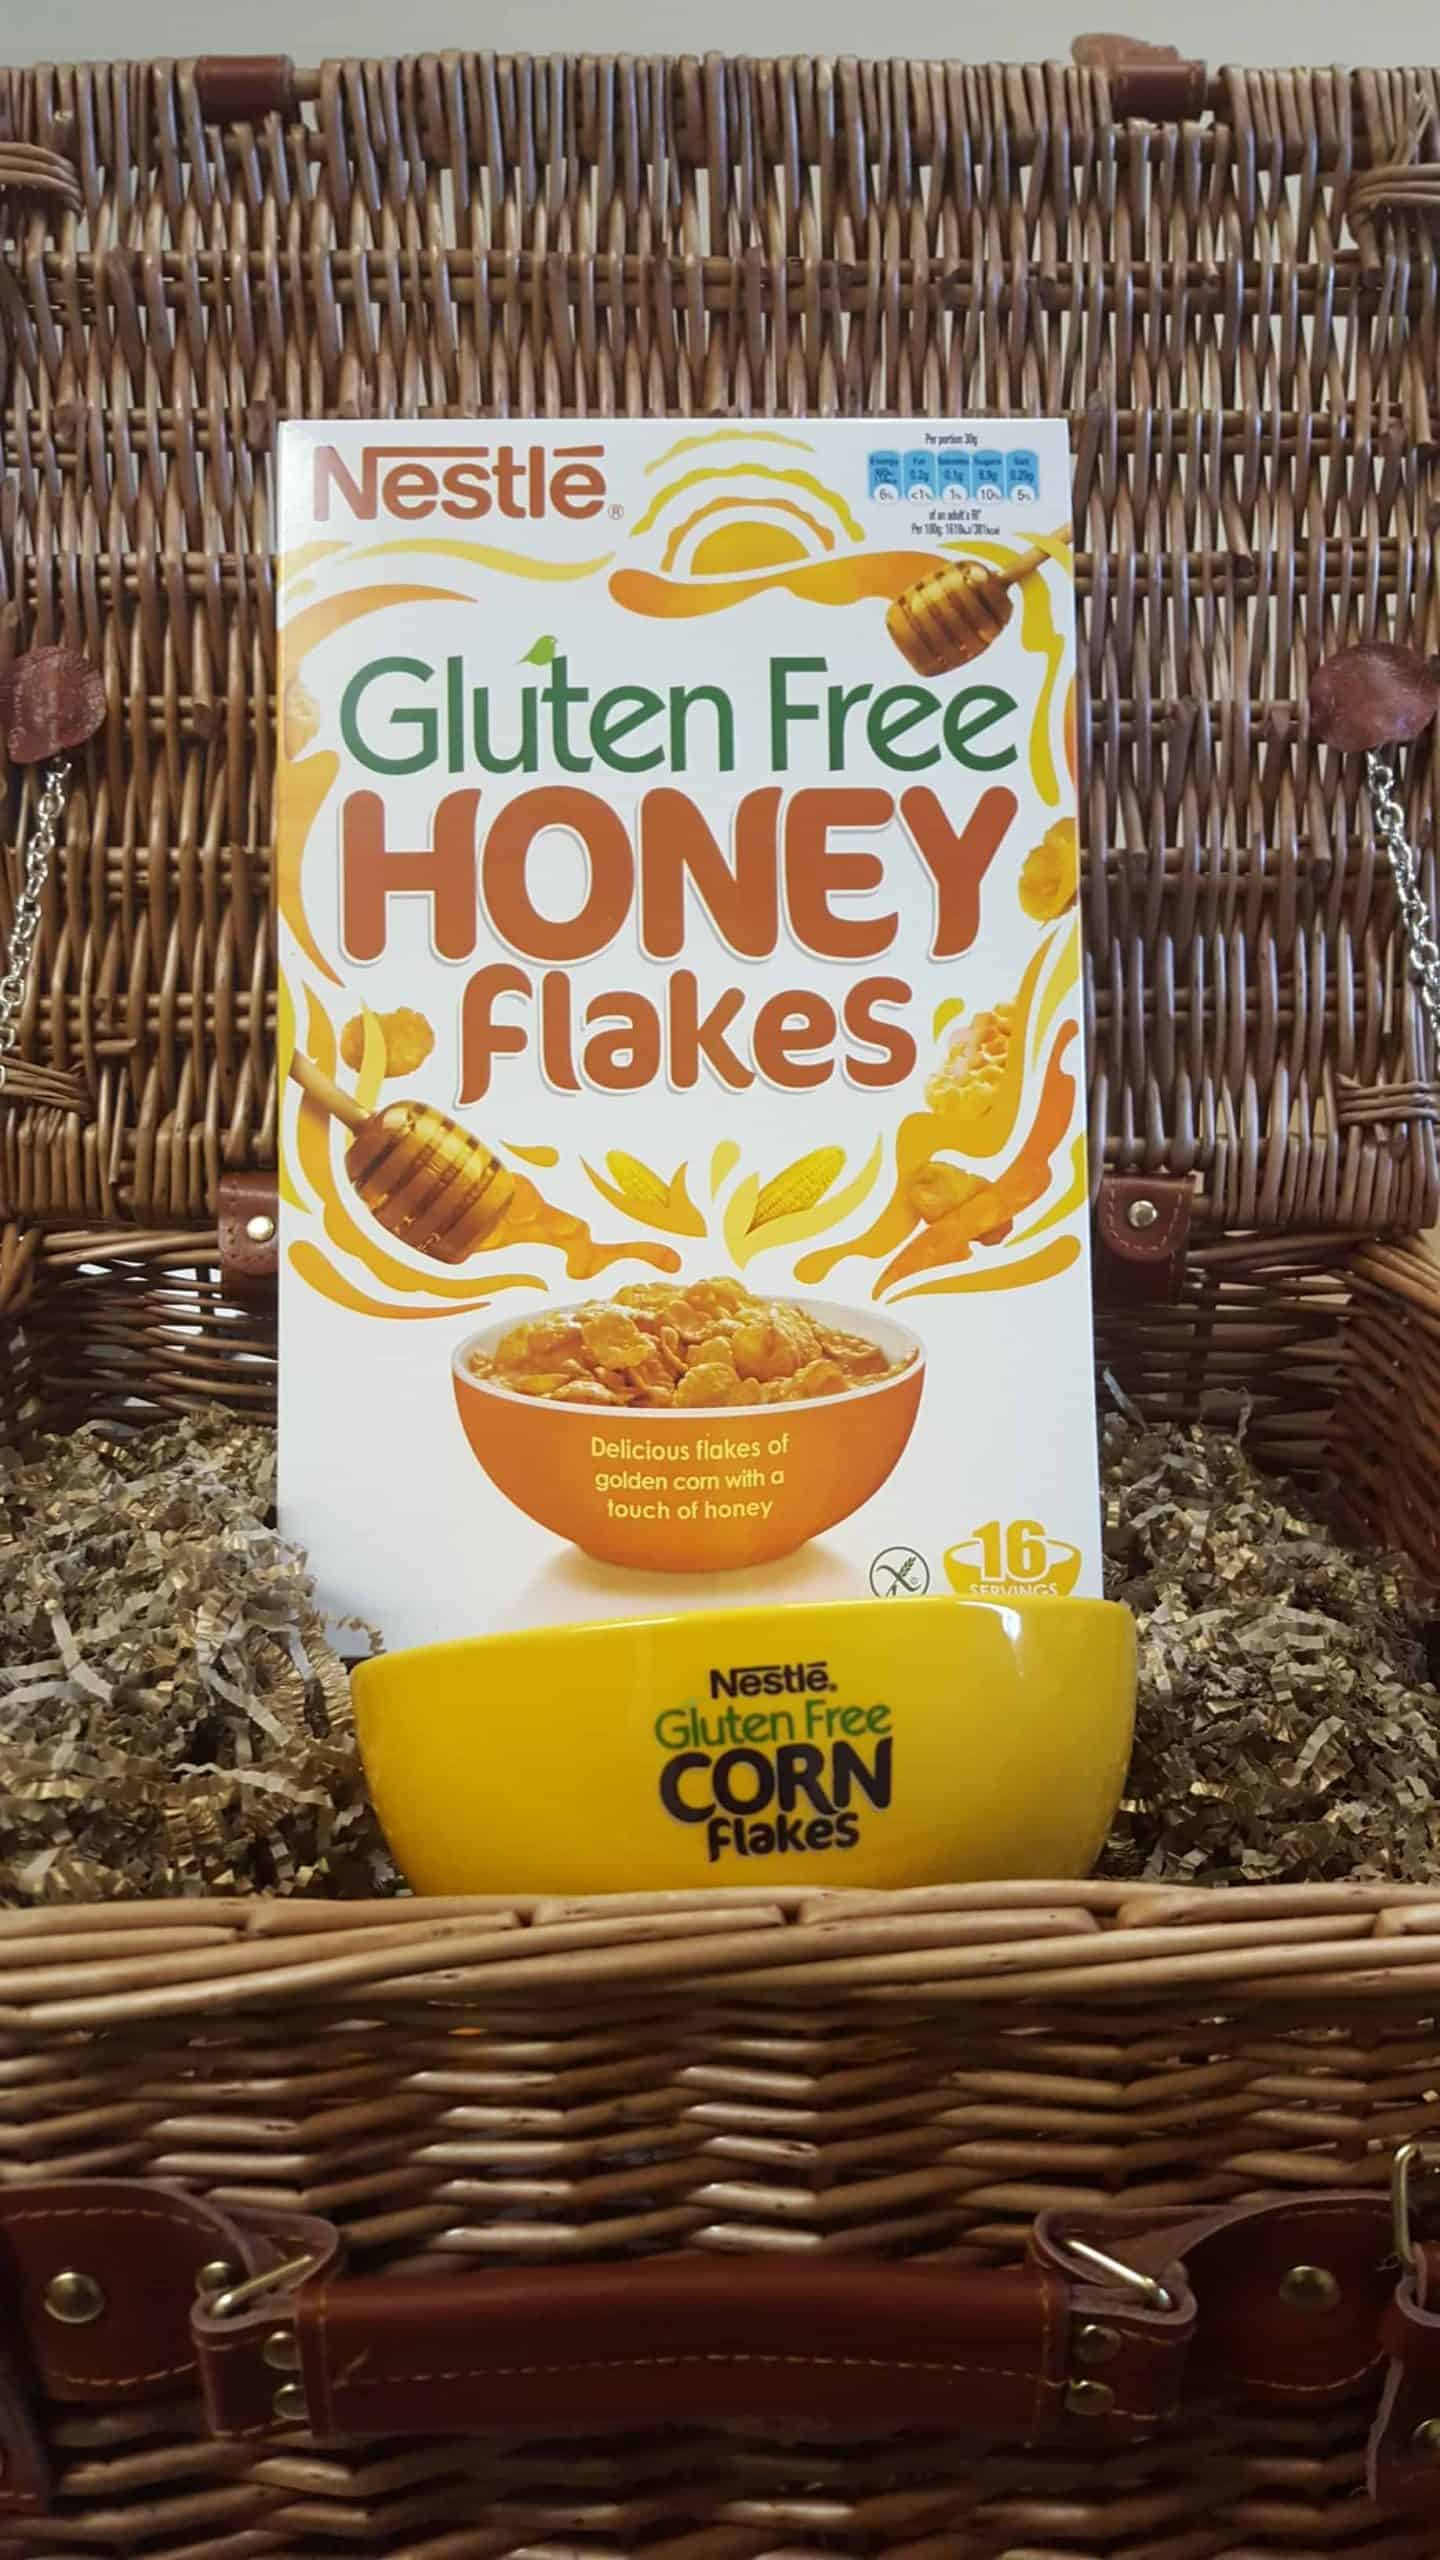 WIN a gluten free cereal hamper with Nestlé!